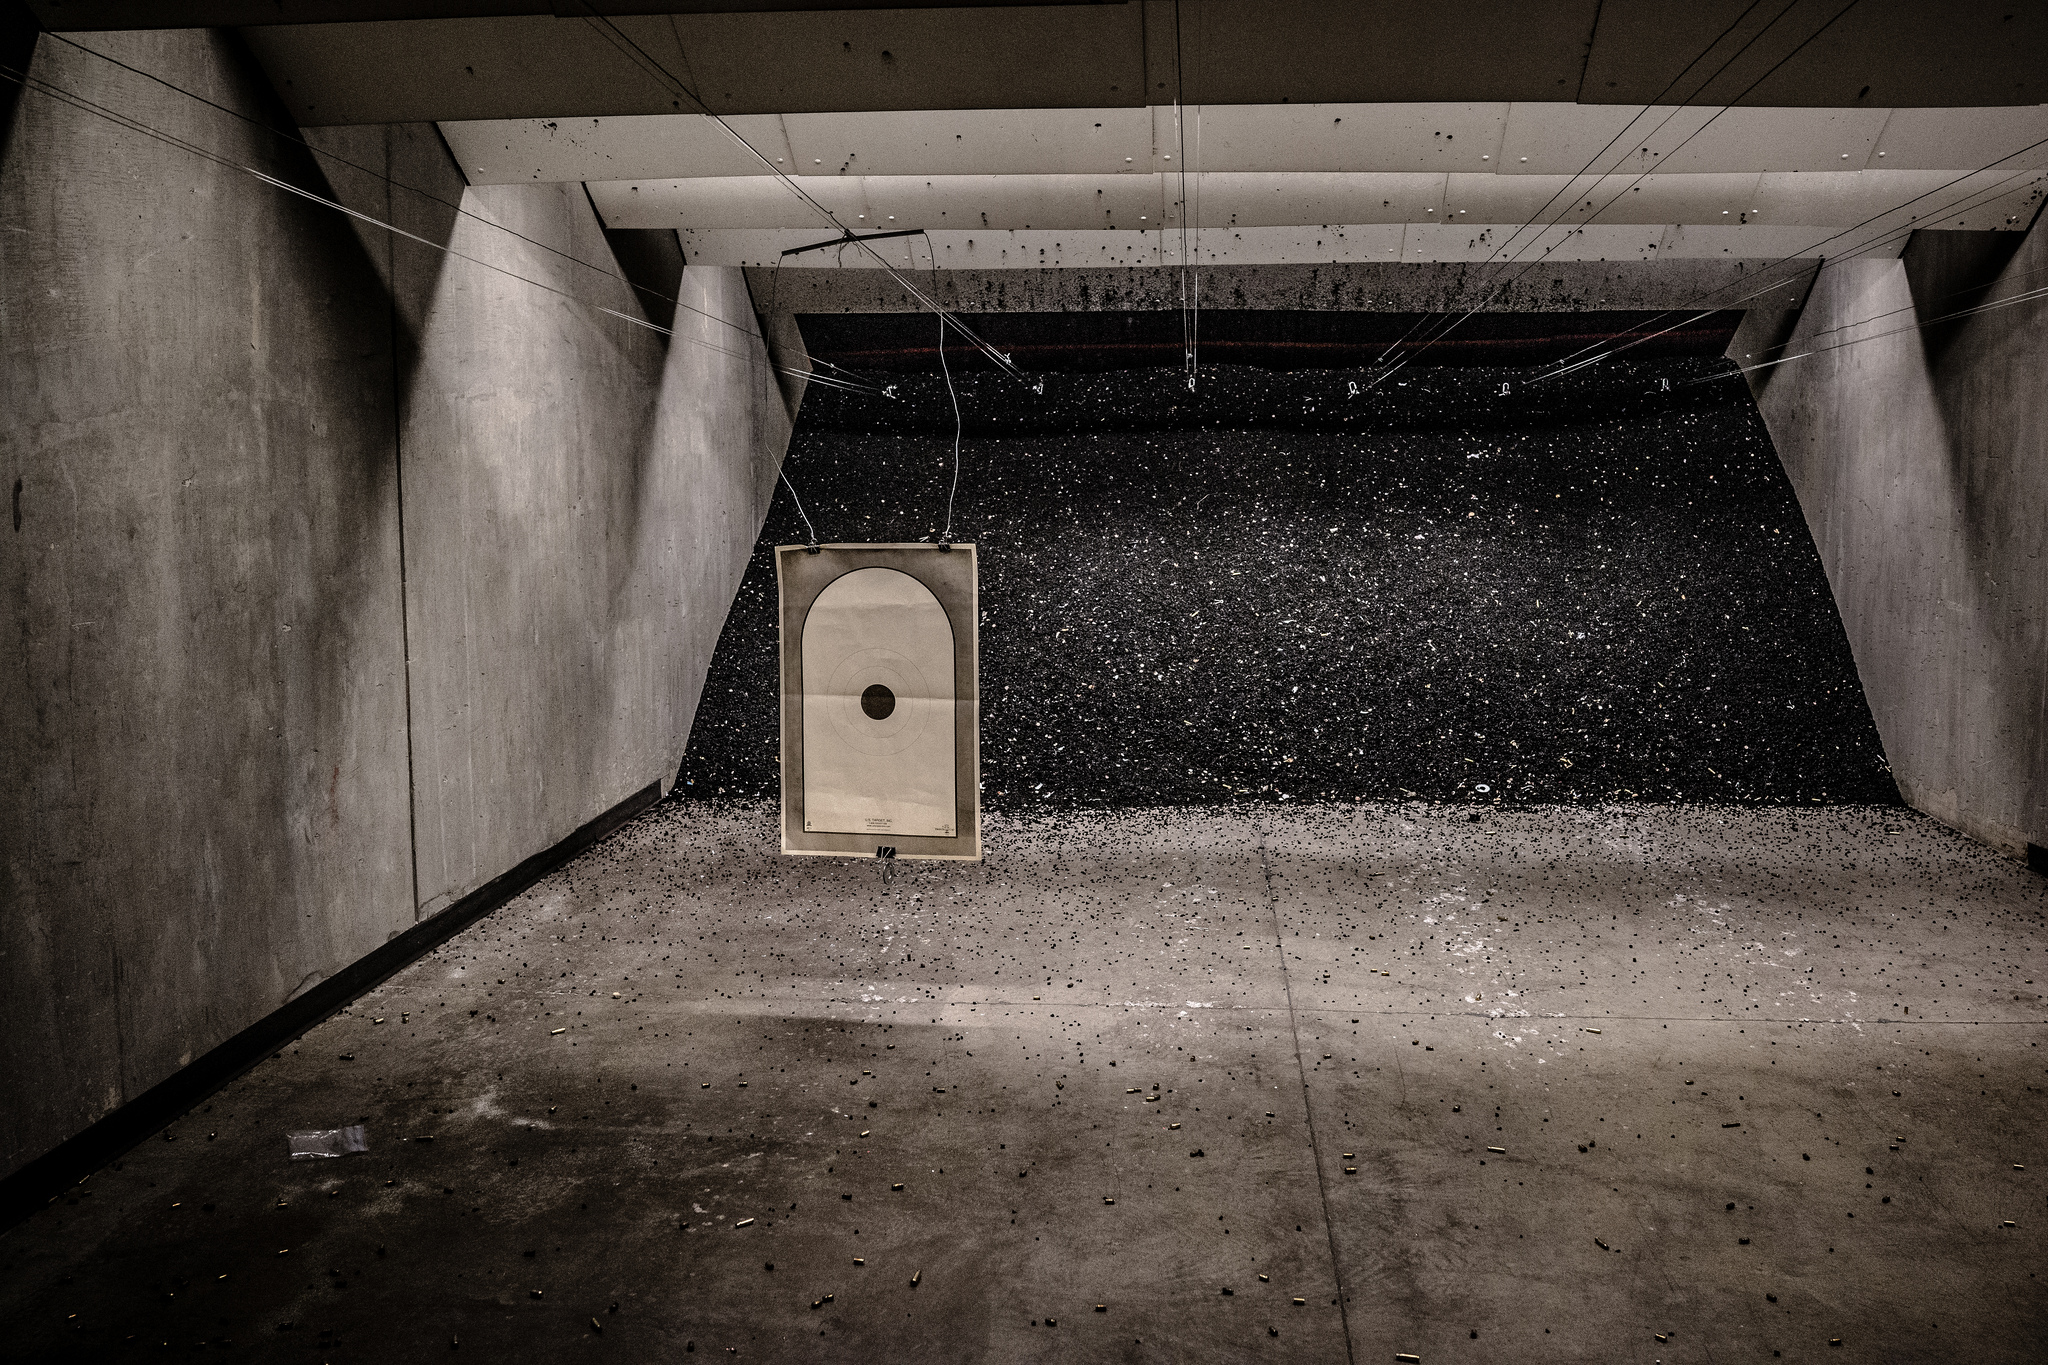 Shooting of Firearms Trainer by NYC Woman Exposes Gun Range Loophole 2048x1365